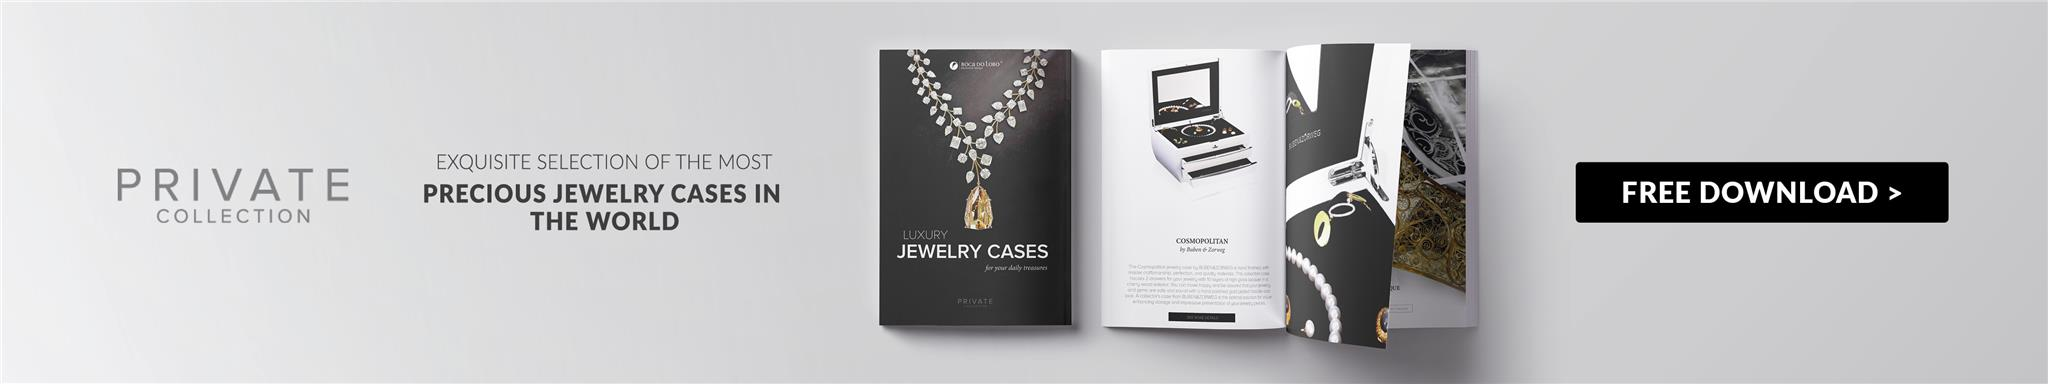 Jewelry Cases Ebook Boca do Lobo   precious jewelry cases in the world banner